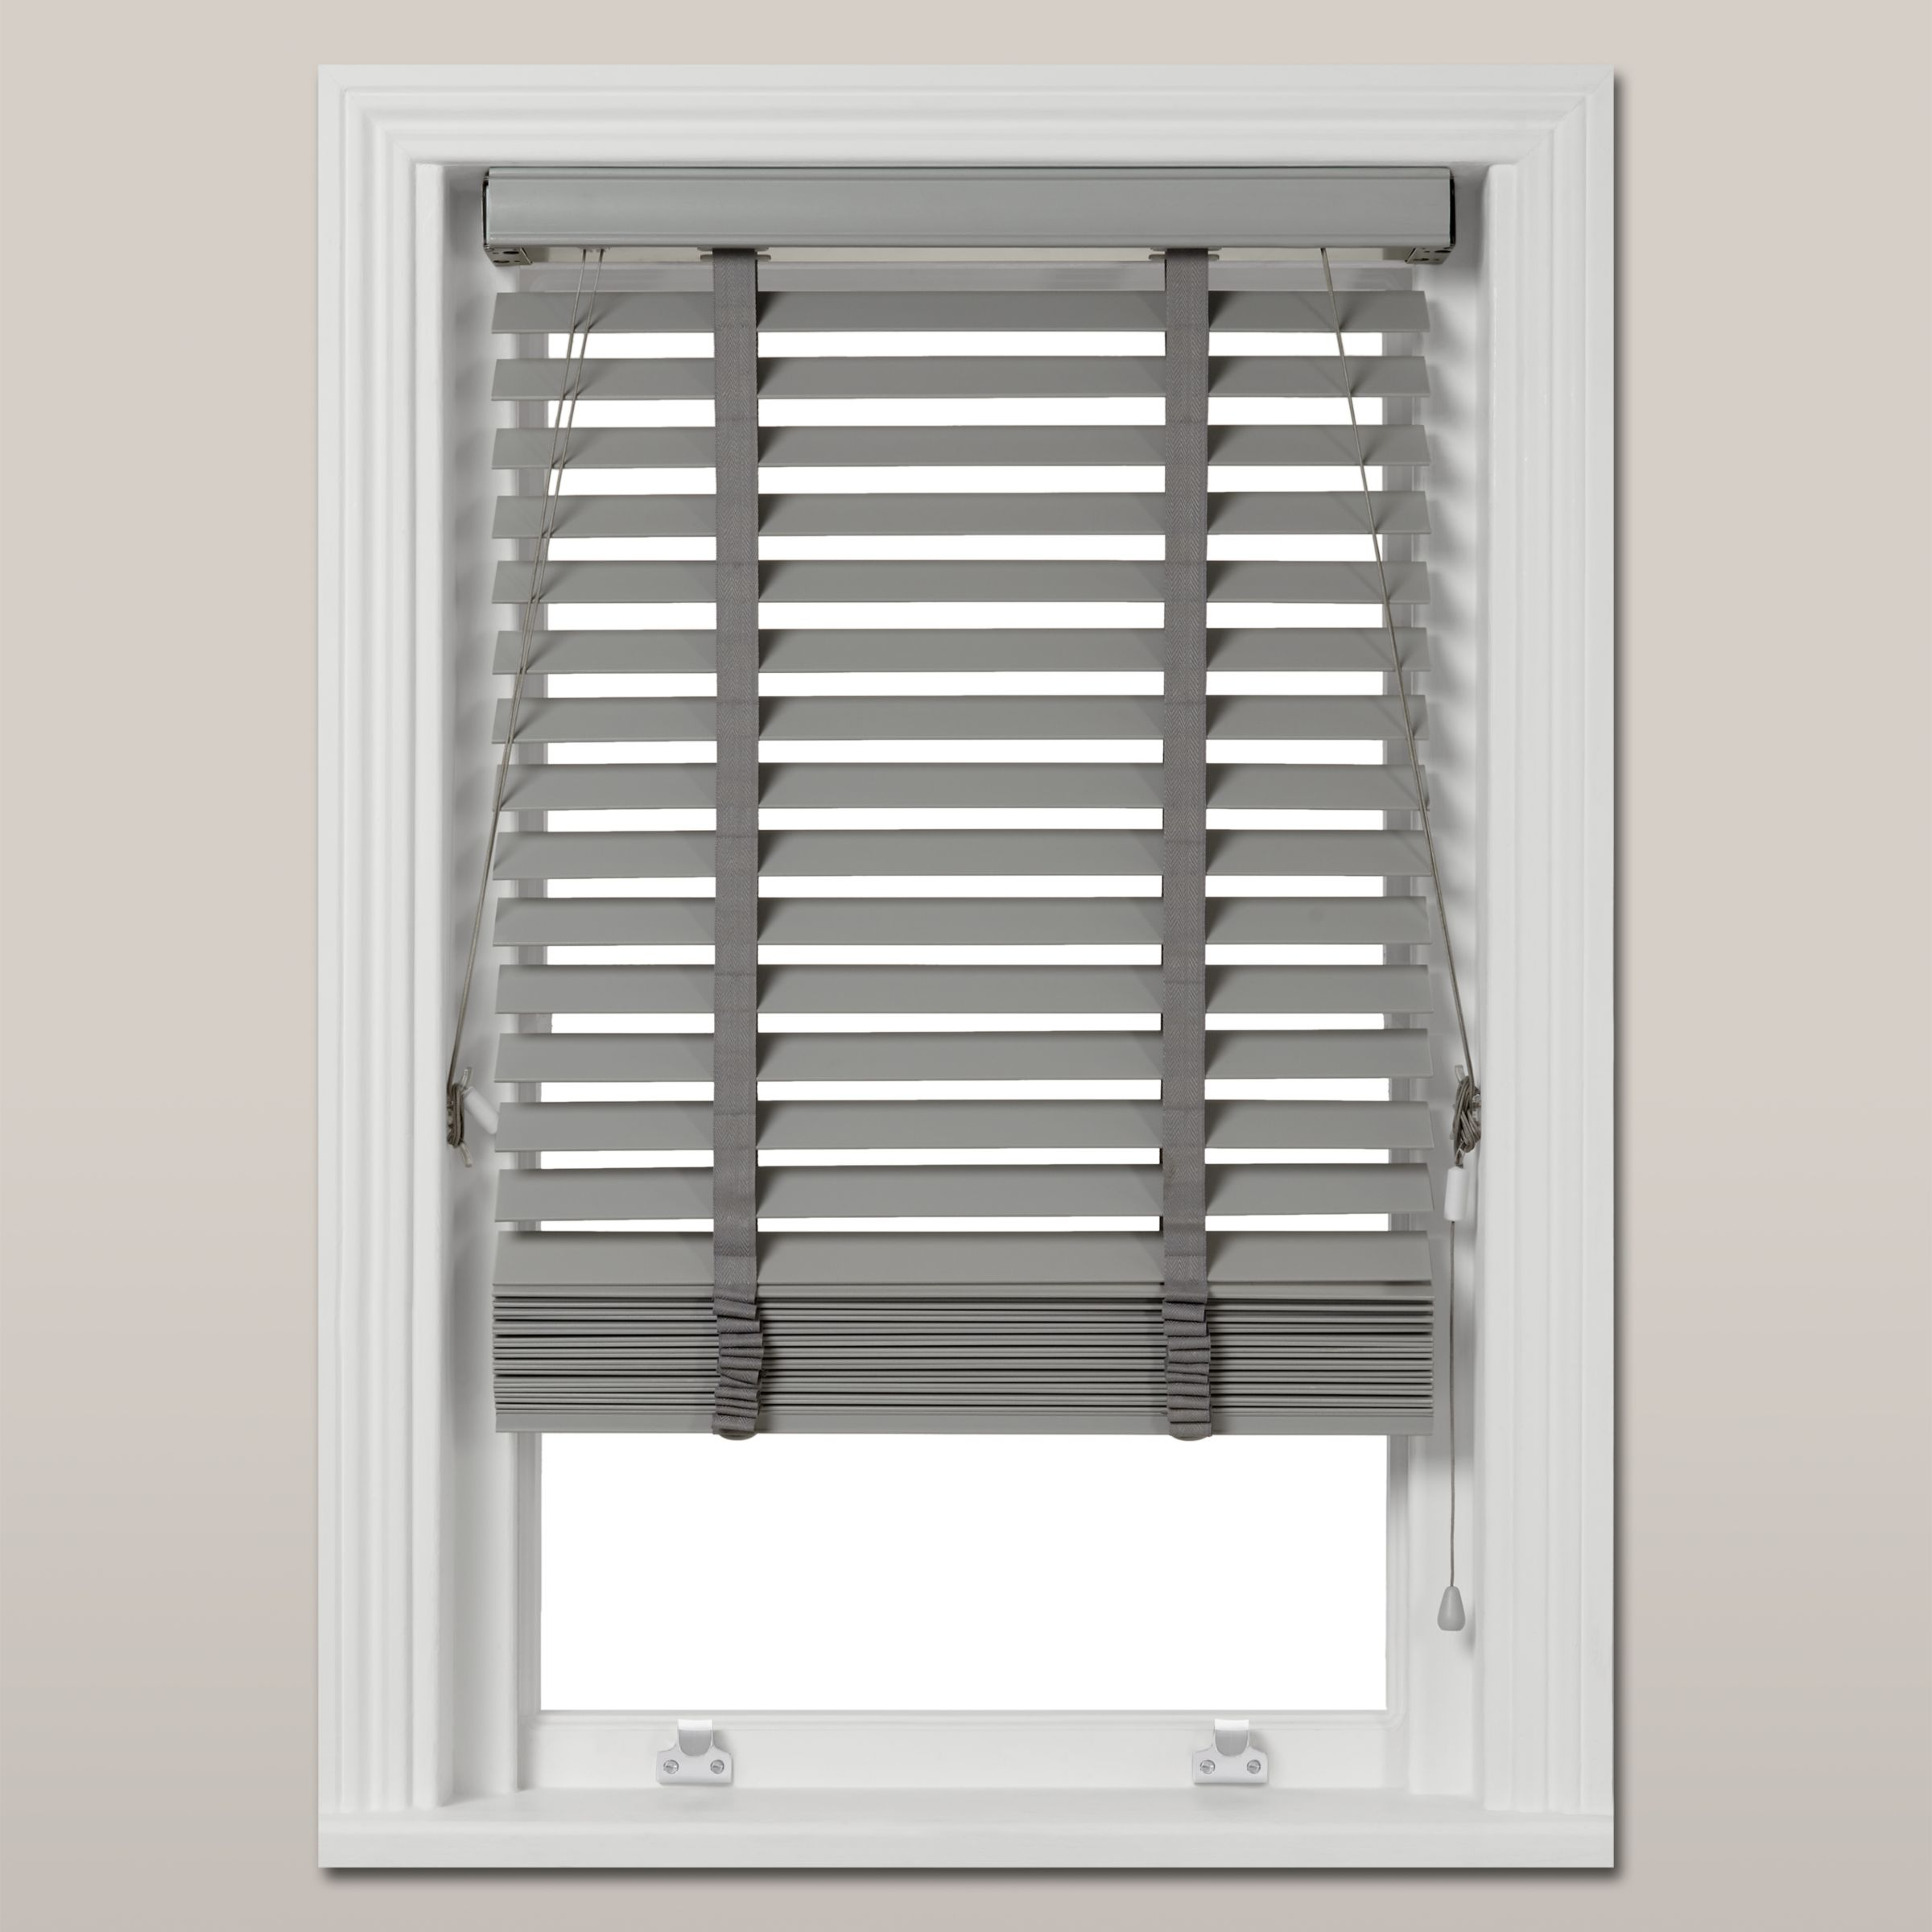 are standard payless index vertical large llc sliding glass a or doors for options excellent valance windows and blinds dust choice horivert cover micro an include square rounded our mini